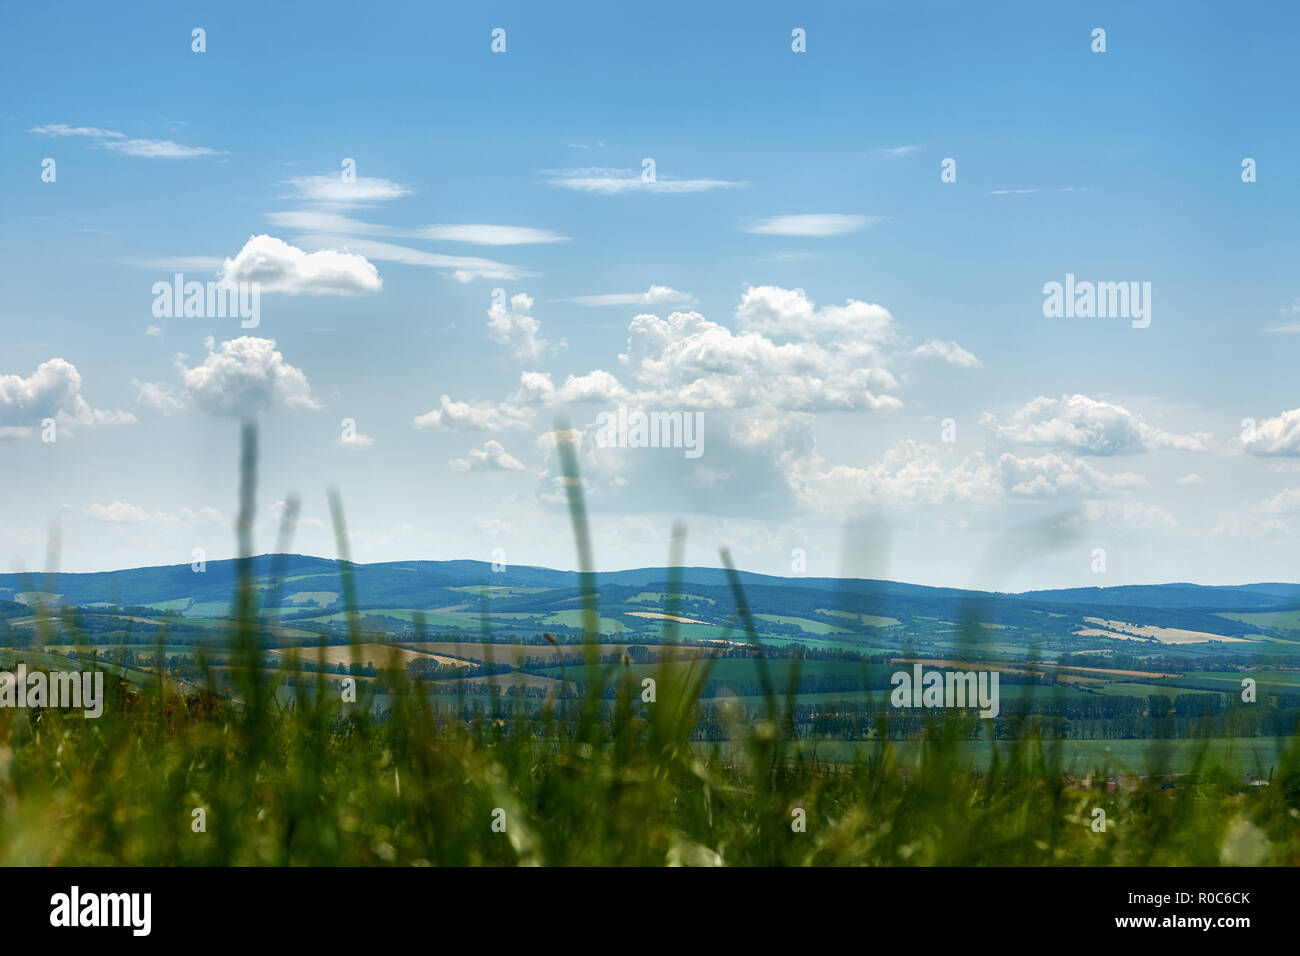 A view of the hillside near Saint Anthony on the farmland around the town of Blatnice in South Moravia. Under a blue sky with clouds - Czech Republic Stock Photo